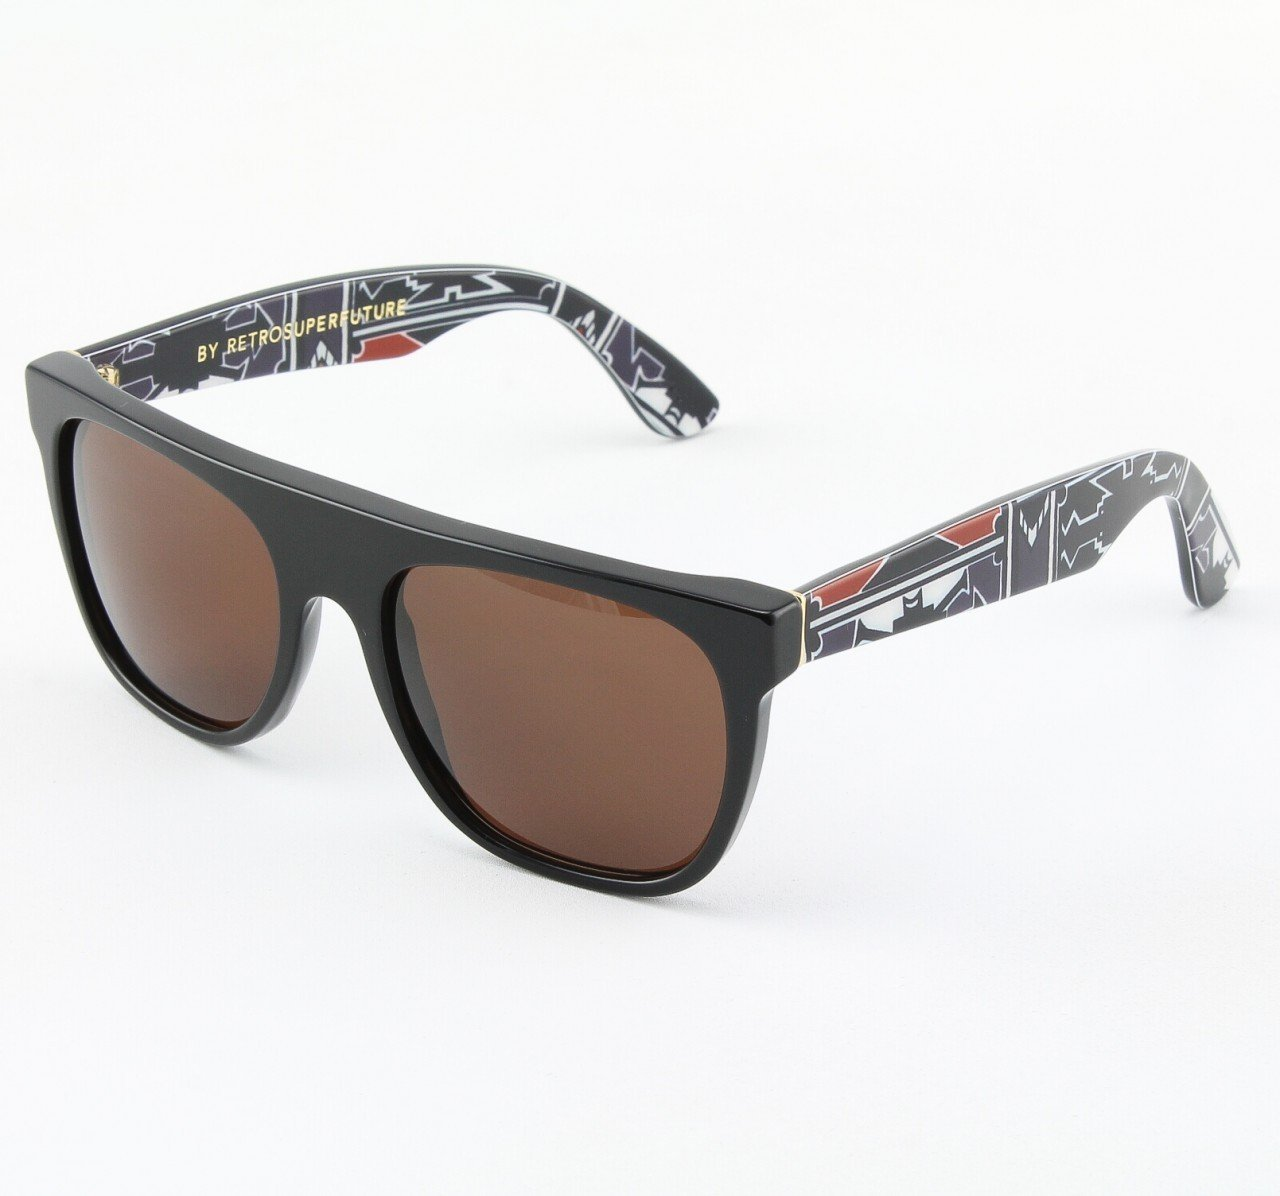 Super Flat Top 788/3T Sunglasses Burgandy with Black Zeiss Lenses by RETROSUPERFUTURE